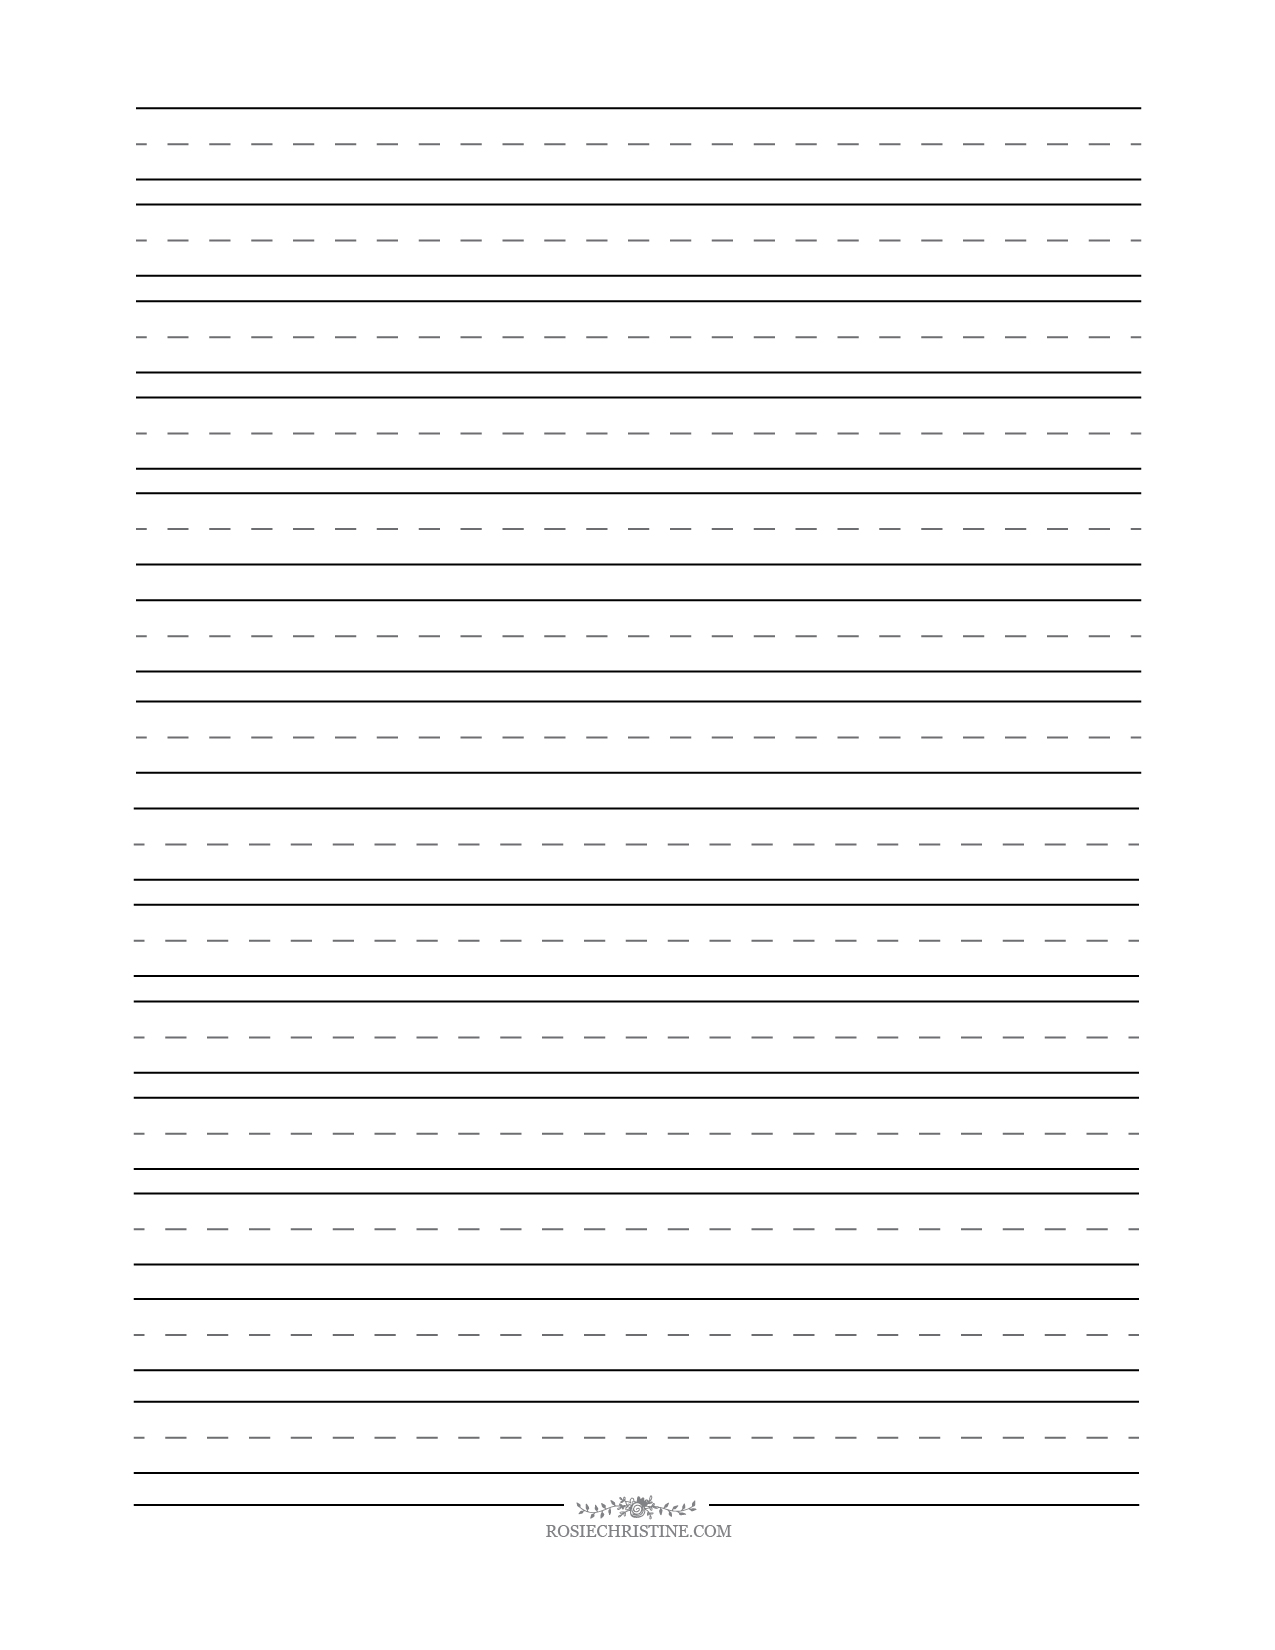 Cursive Blank Worksheets Rosie Christine